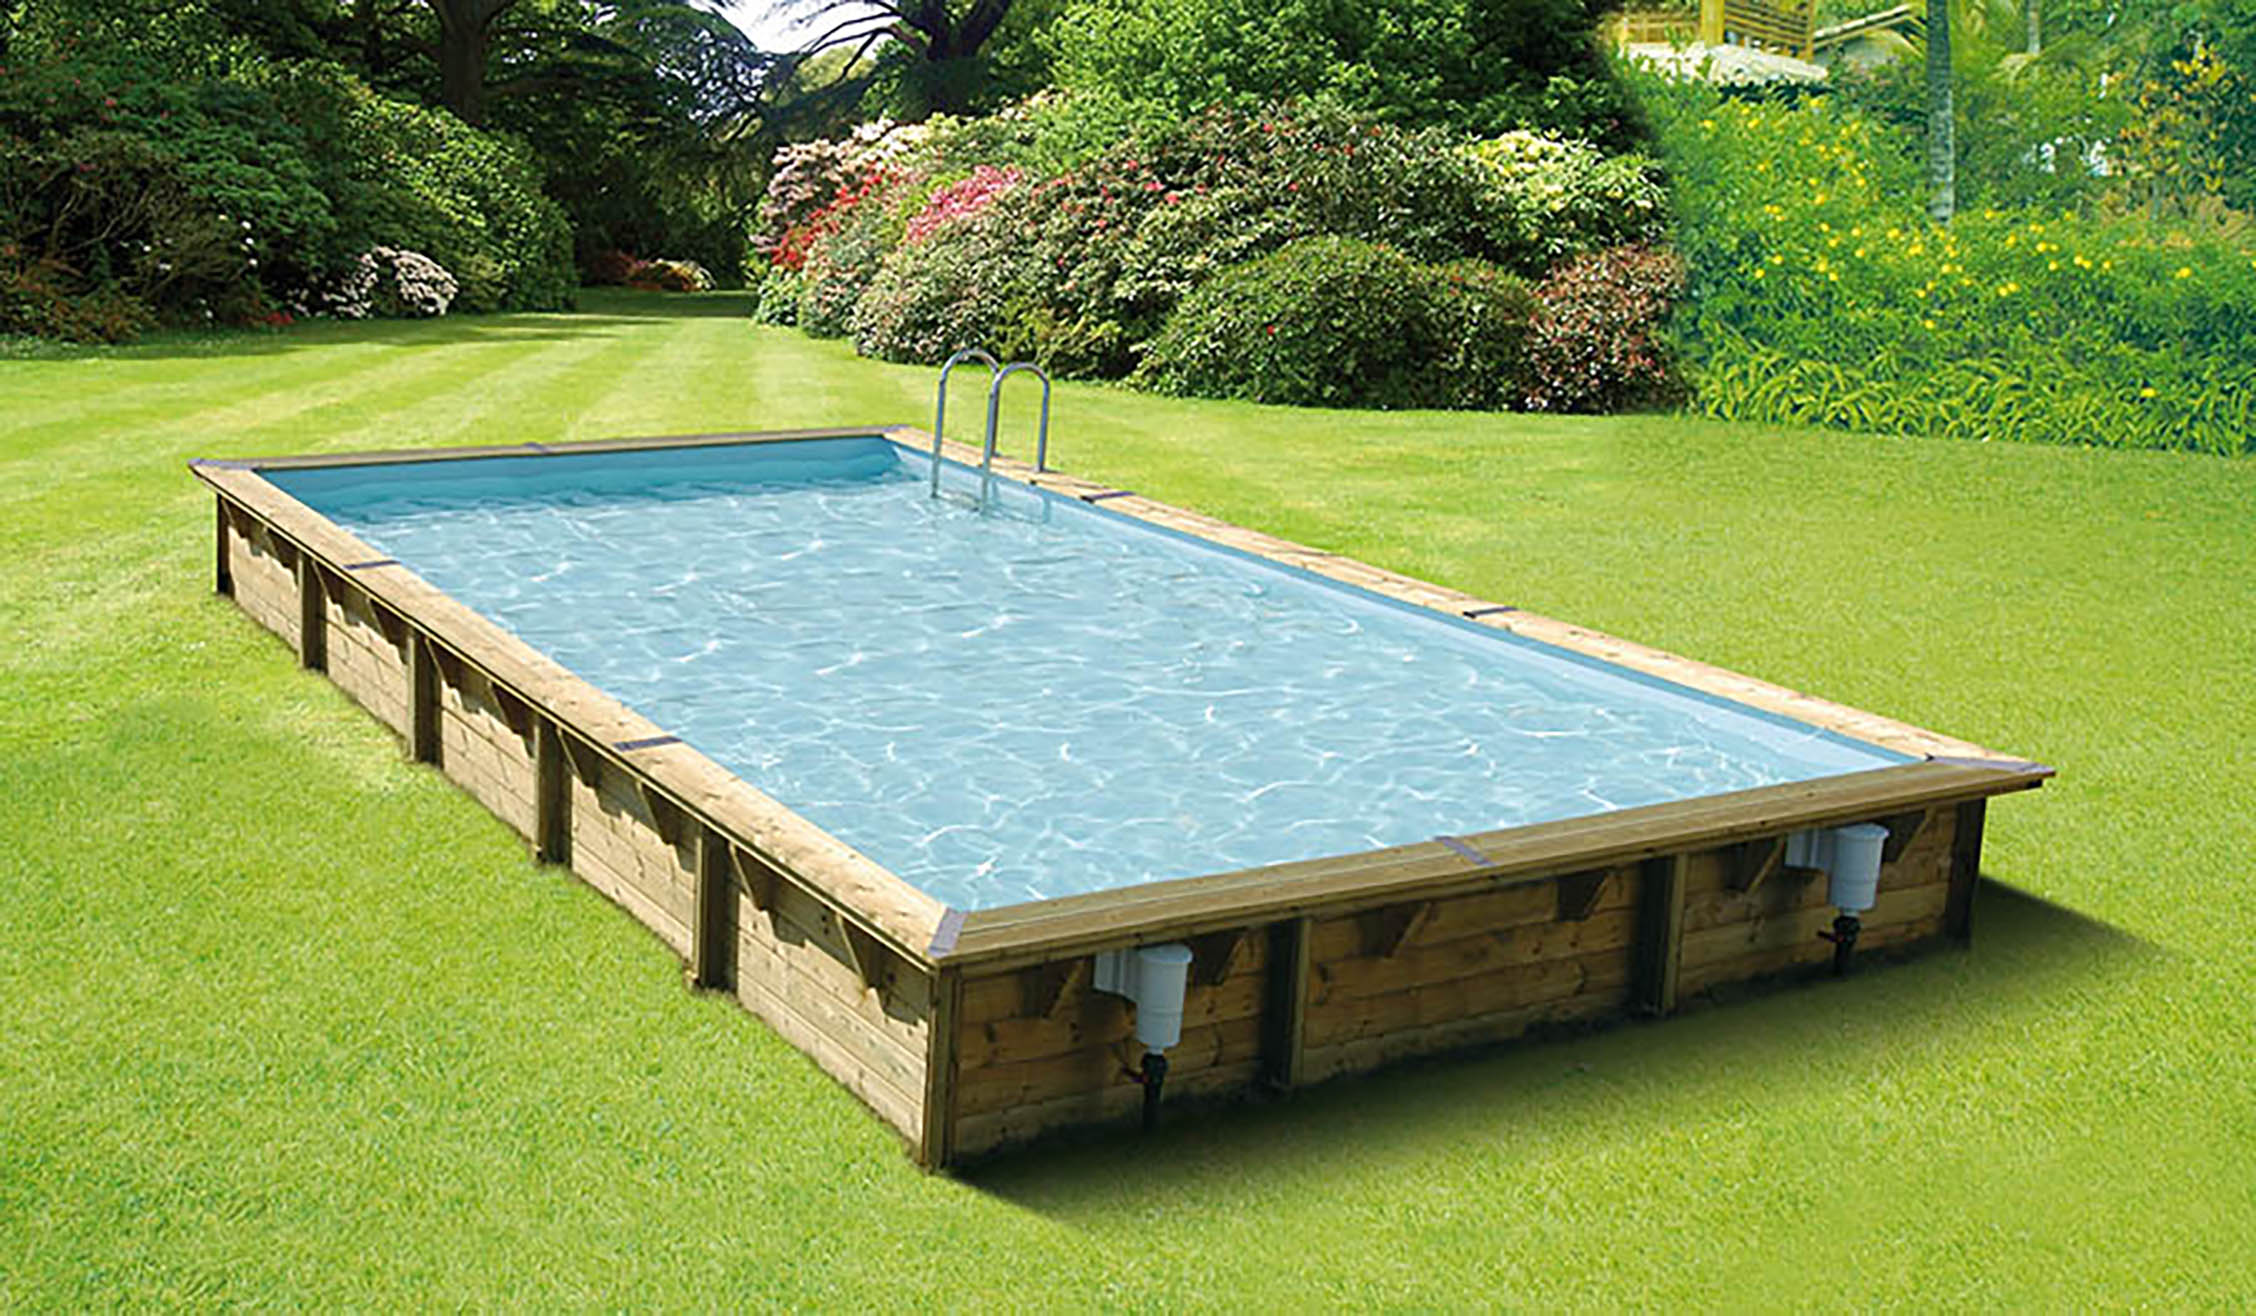 Amenagement piscine bois hors sol id es for Amenagement piscine hors sol bois